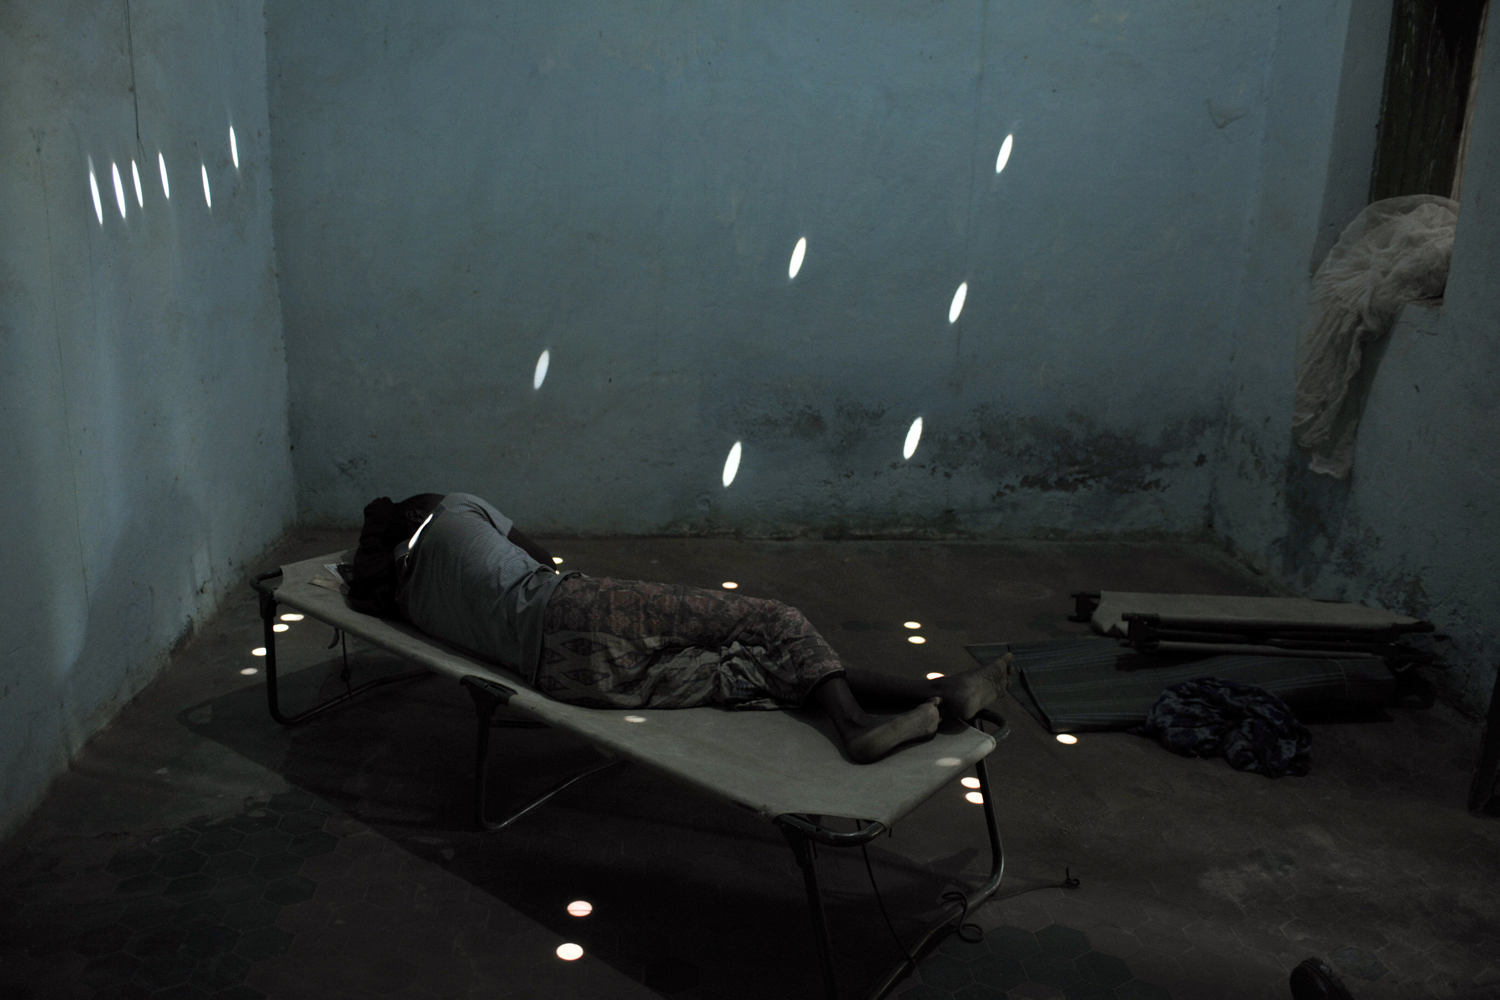 Feb. 19, 2013. A soldier from the Somali National Army (SNA) lies on a bed at an SNA infirmary in Belet Weyne, about 315 km (196 miles) from the capital Mogadishu, Somalia in this handout photo.